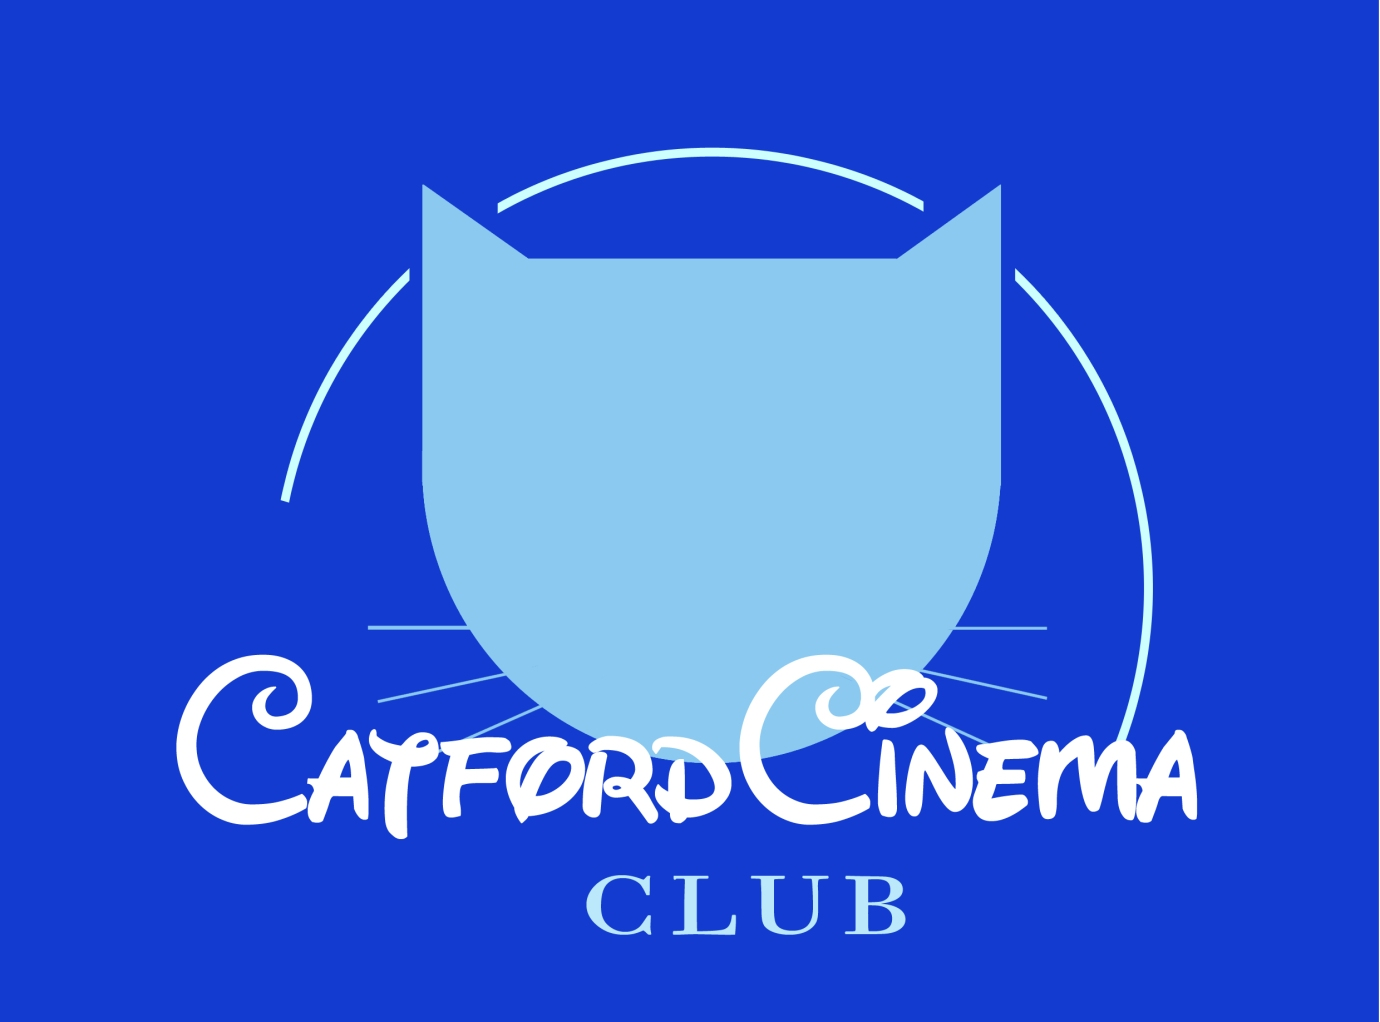 Catford Cinema Club Logo